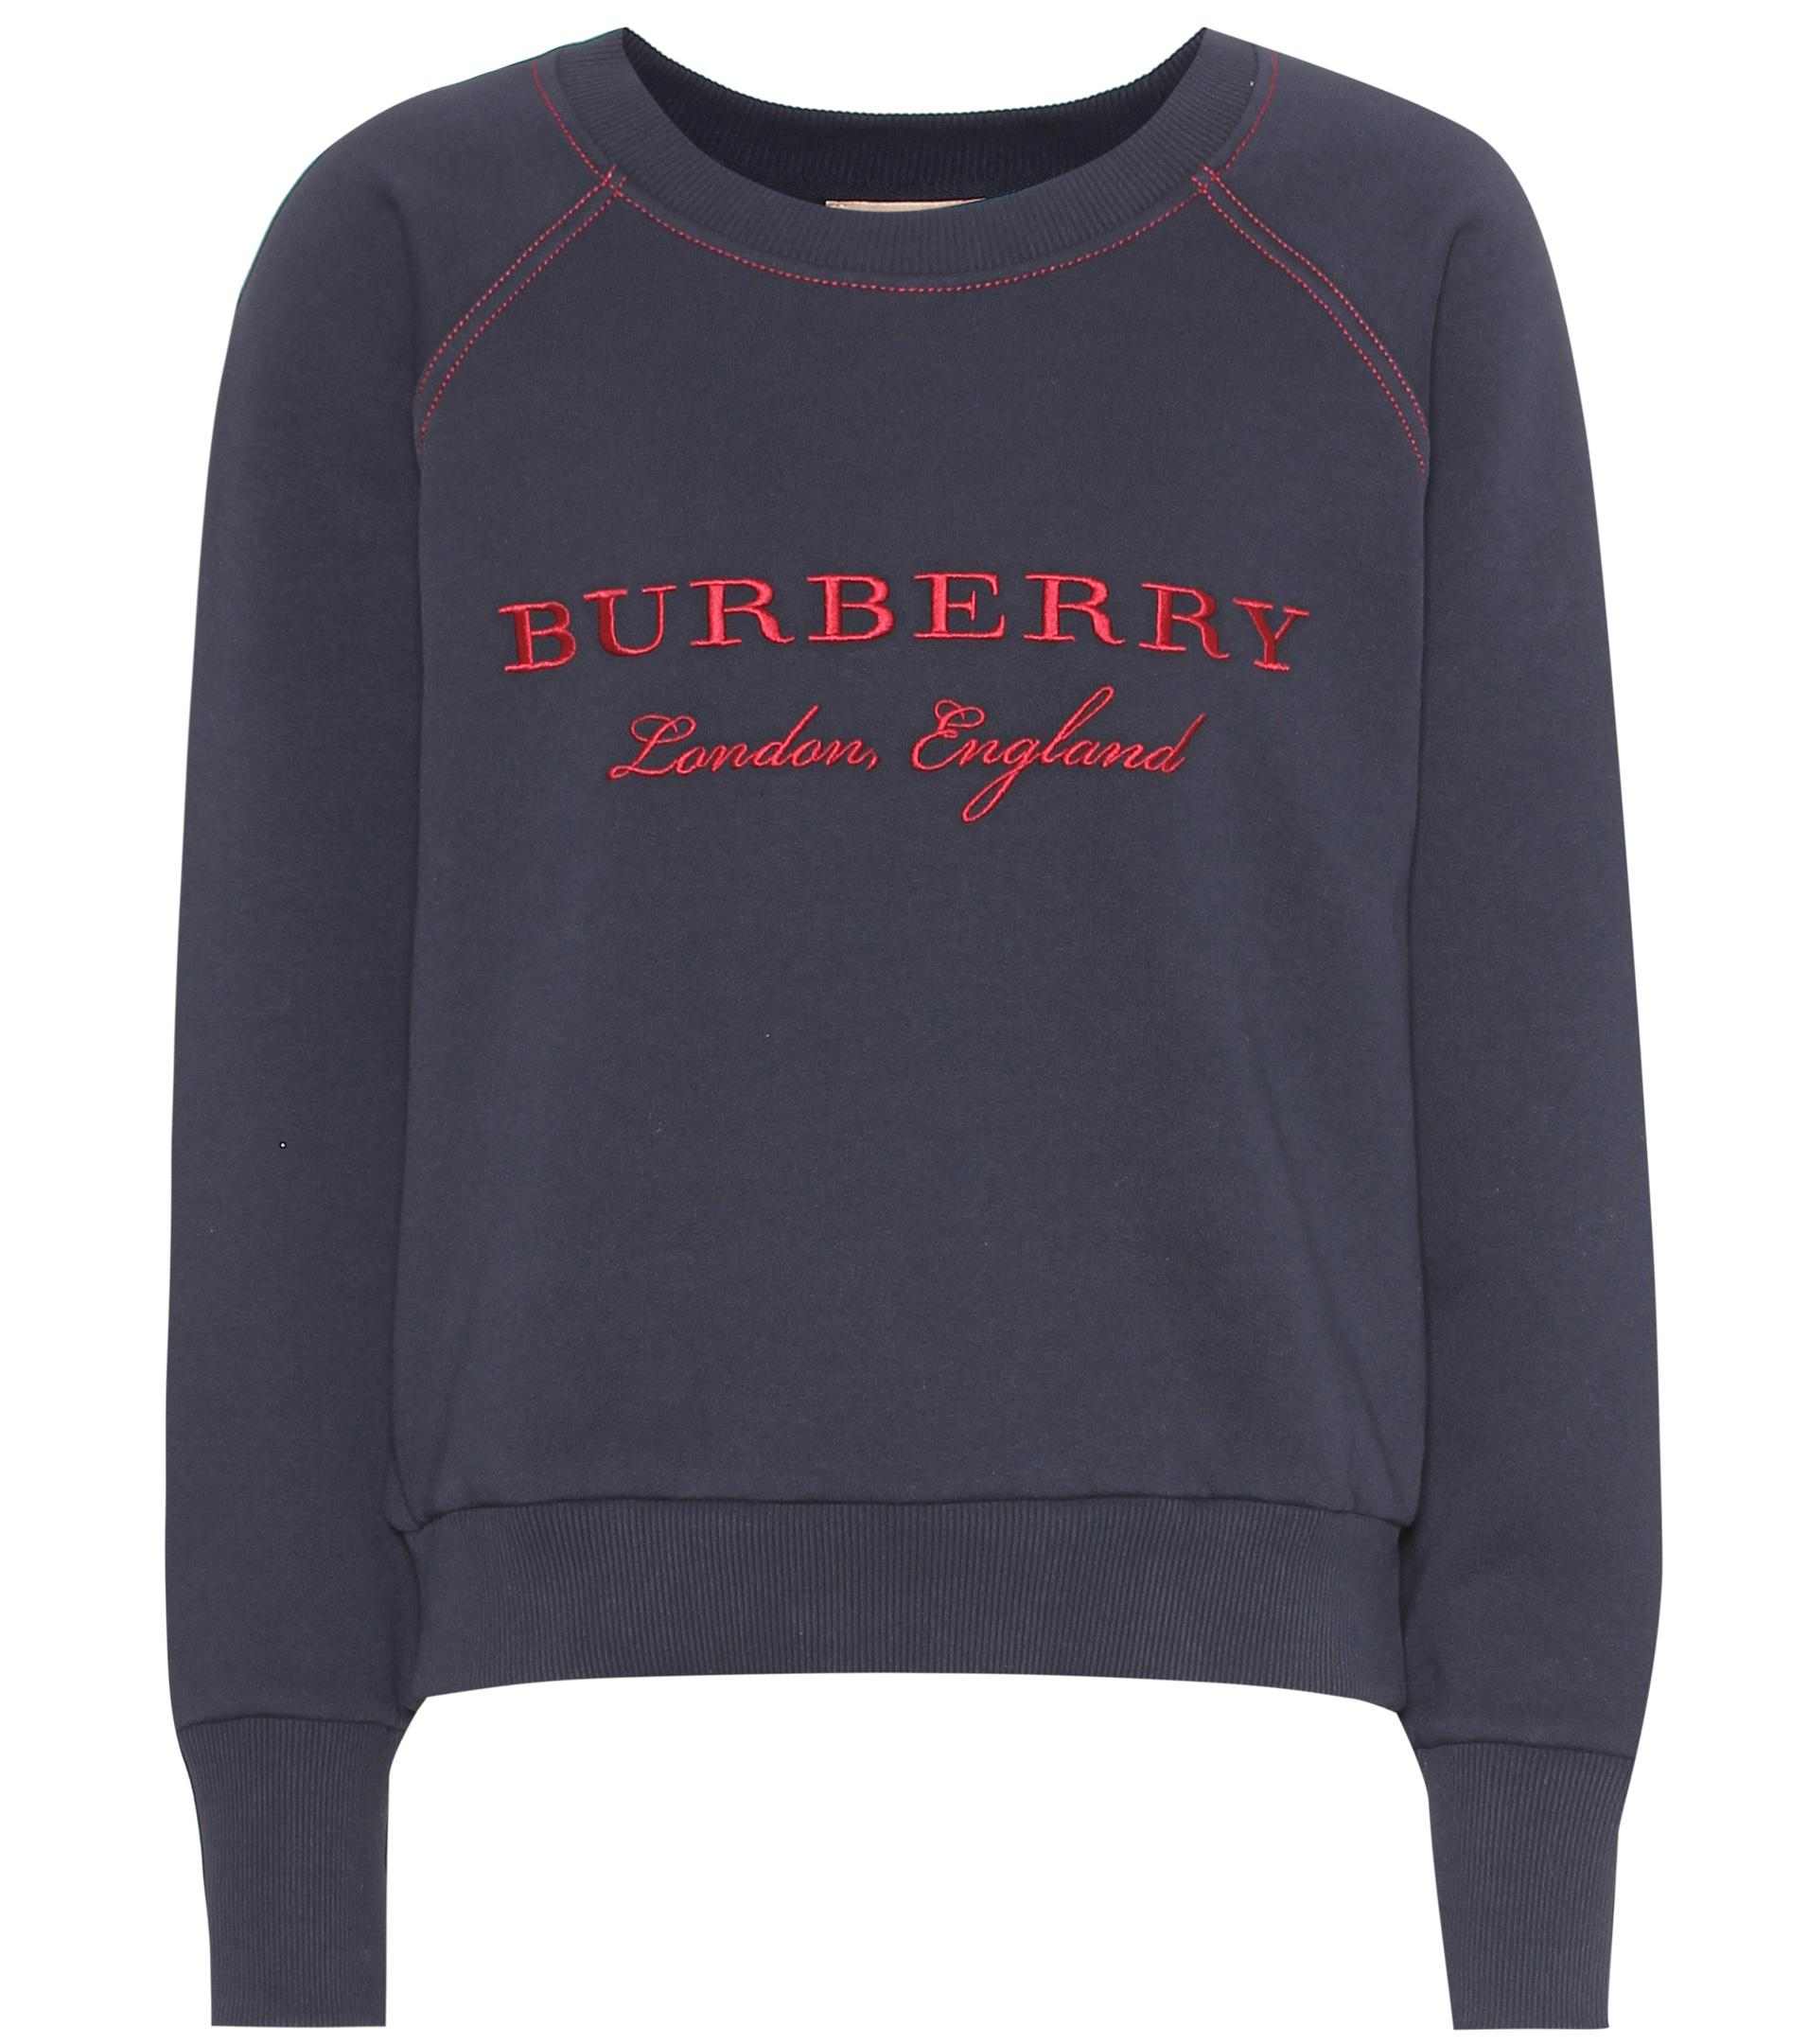 Cotton Burberry Sweater Embroidered Embroidered blend Cotton Burberry T0gxw